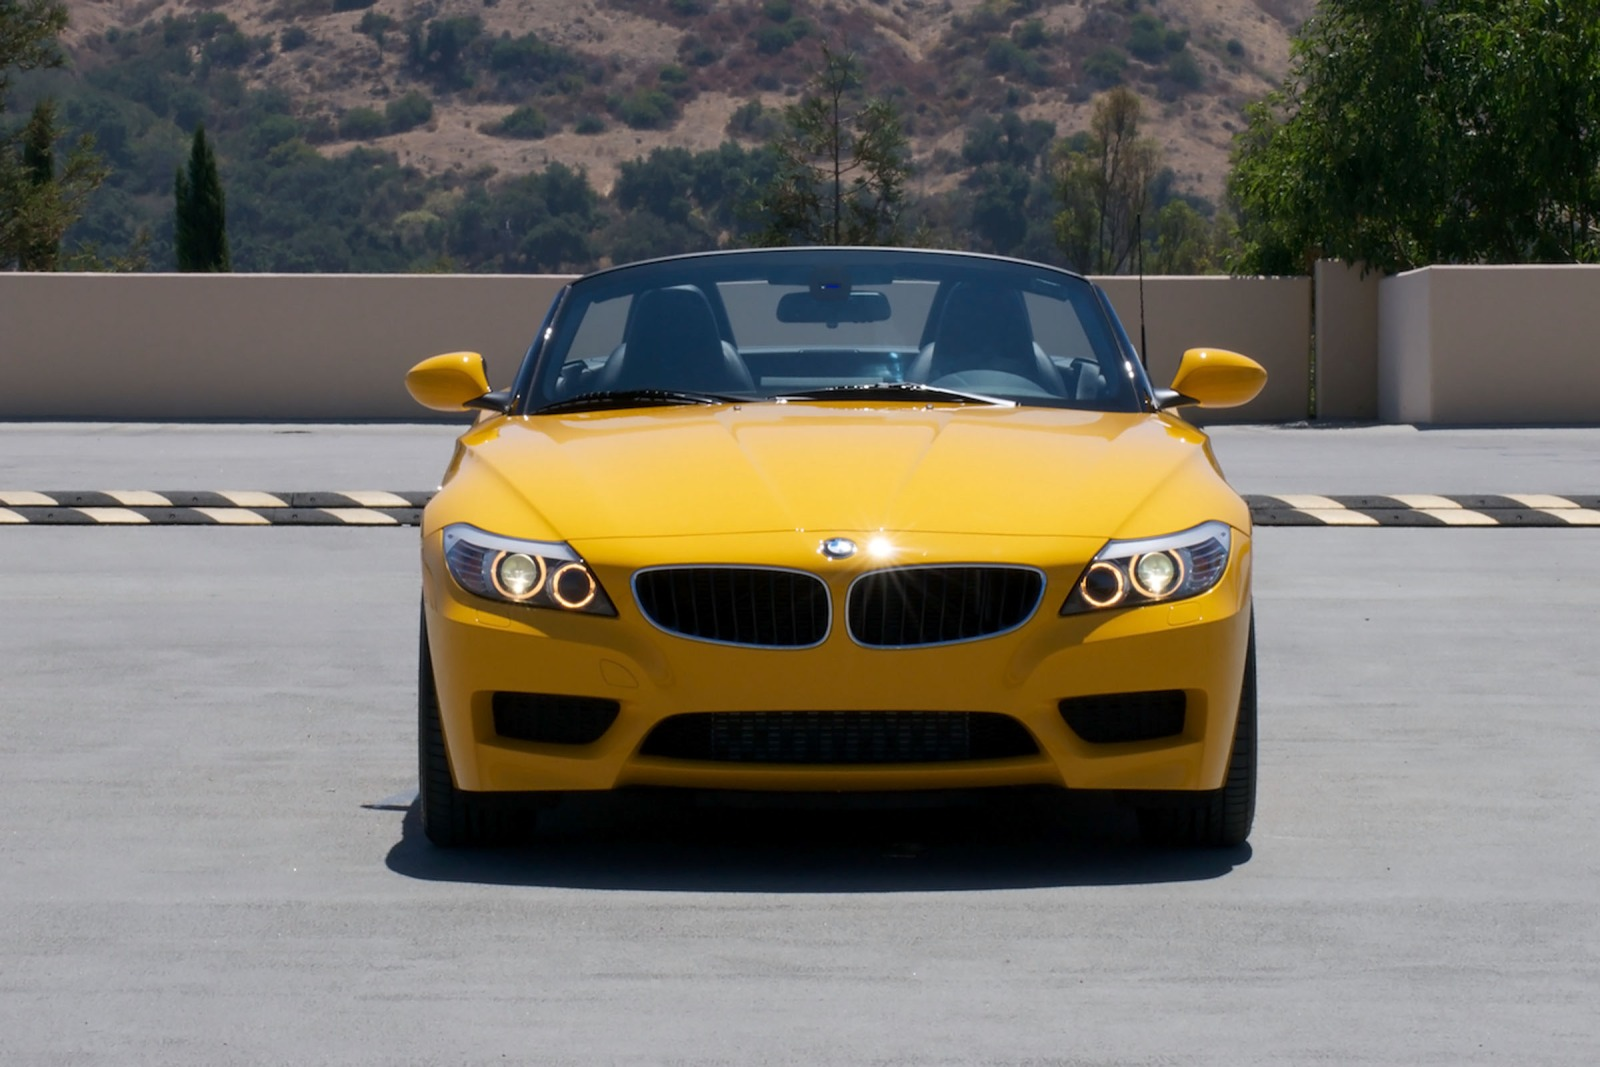 2012 Bmw Z4 Sdrive28i Vin Number Search Autodetective